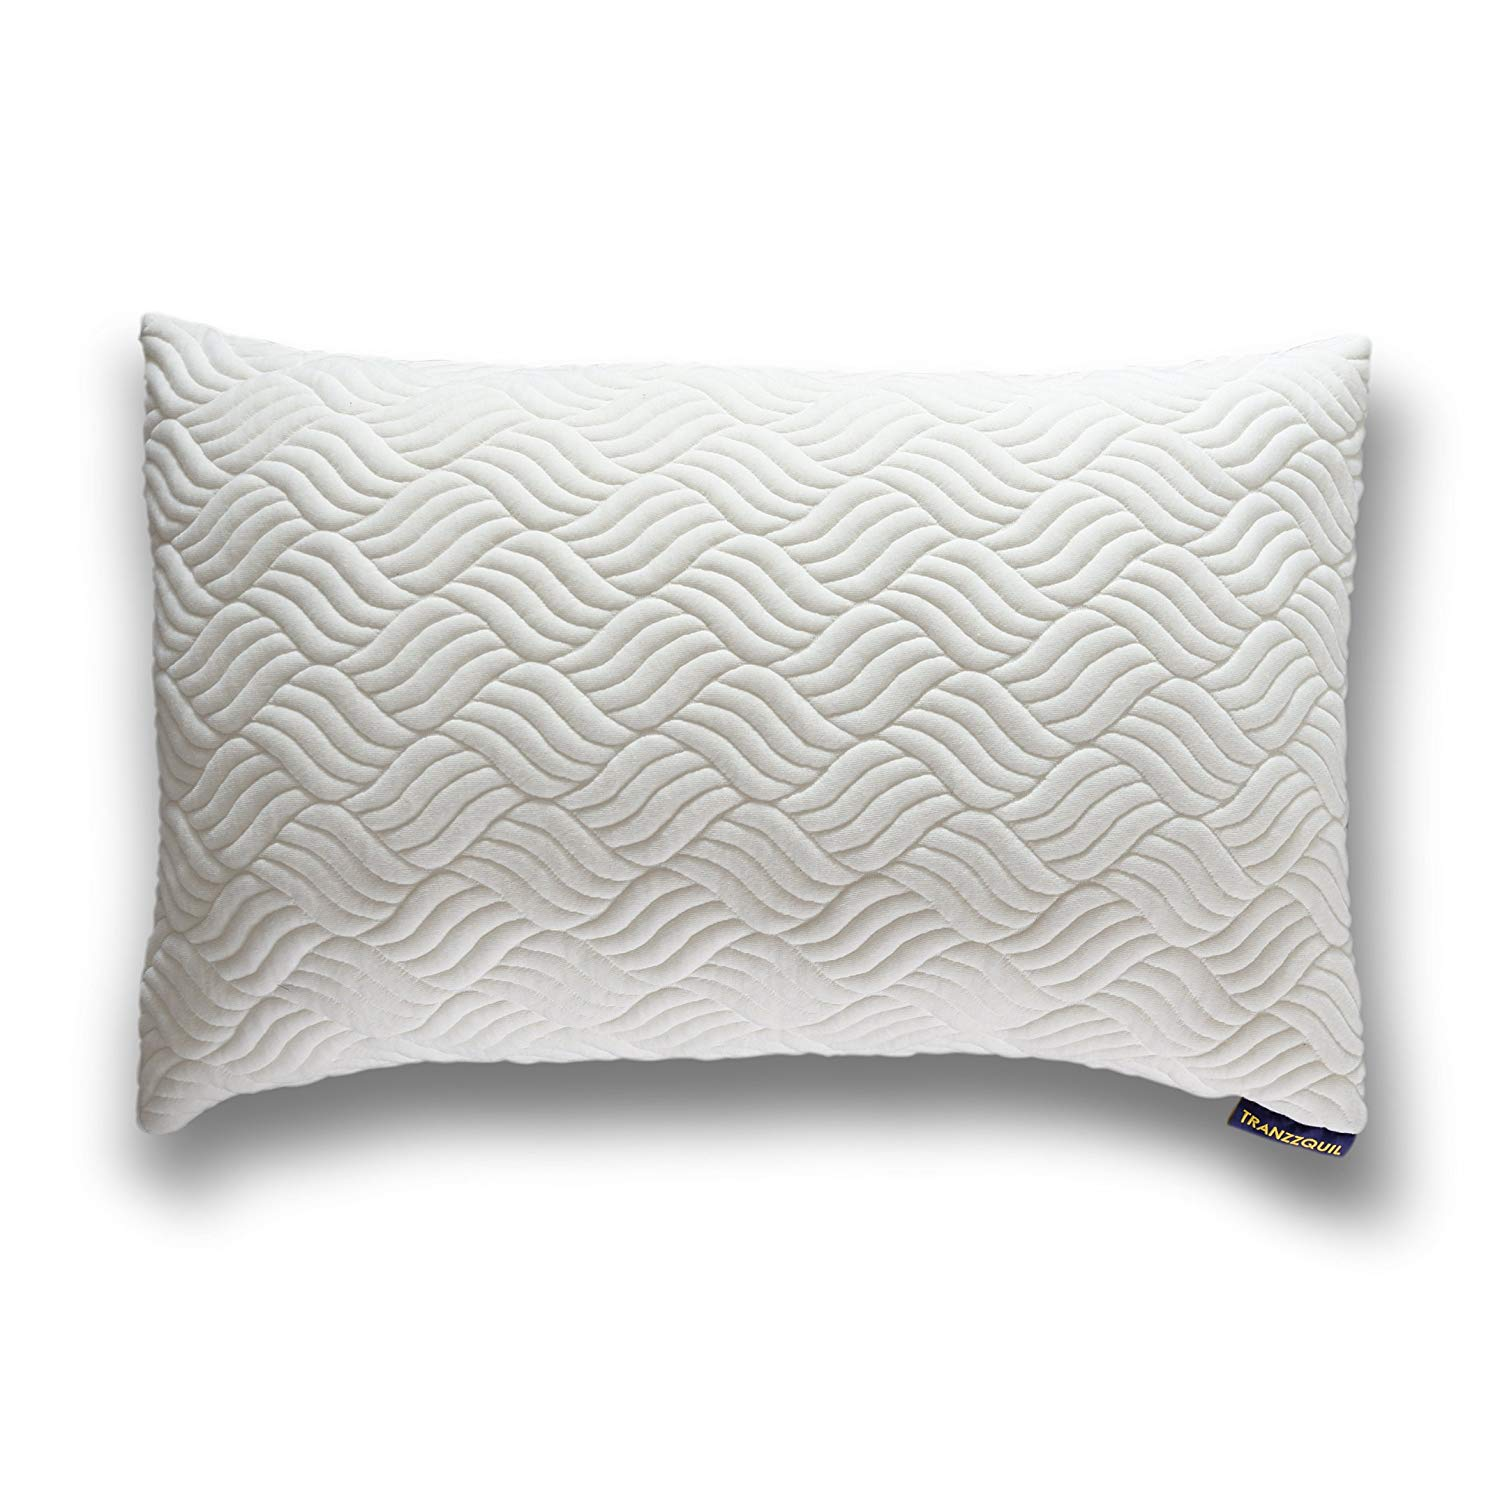 TRANZZQUIL best pillows for shoulder pain review by www.dailysleep.org